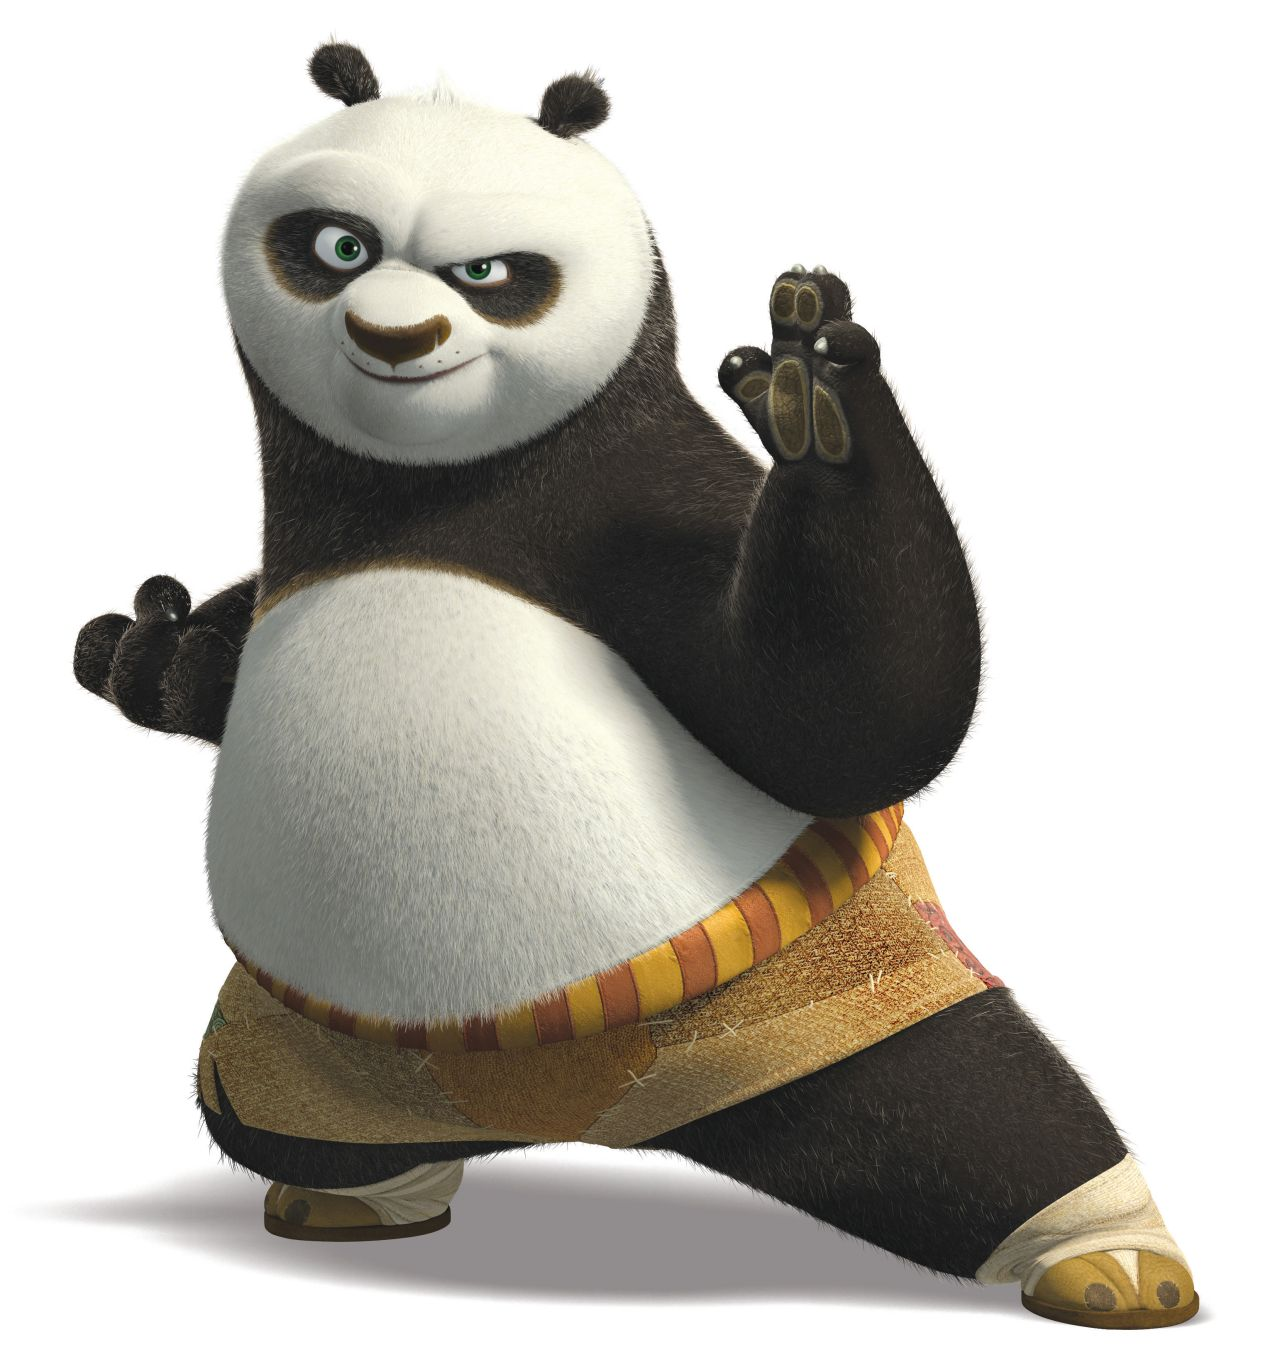 10.45am - The Chi Sau Kung Fu Pandas - Our students will demonstrate their Chi Sau Kung Fu skills in the bottom playground